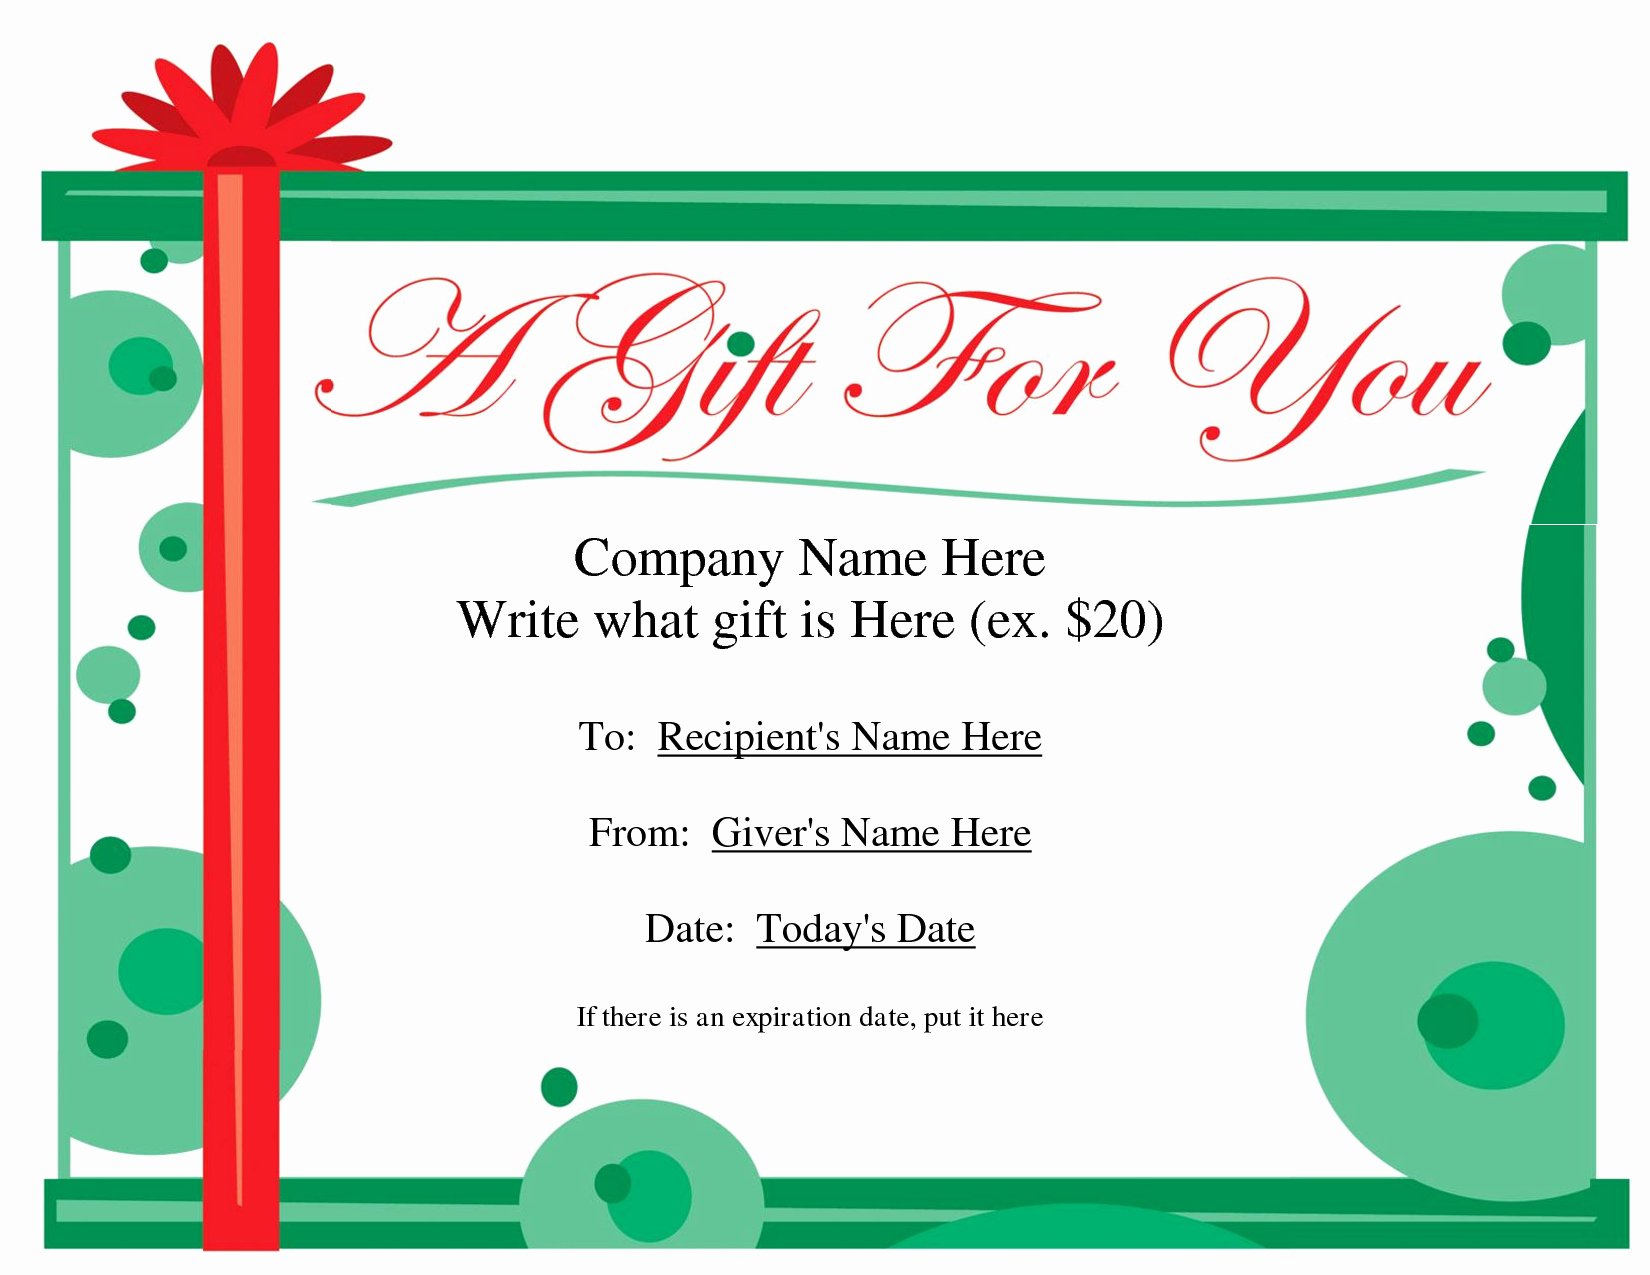 Printable Gift Certificates Templates Free Beautiful Free Printable Gift Certificate Template